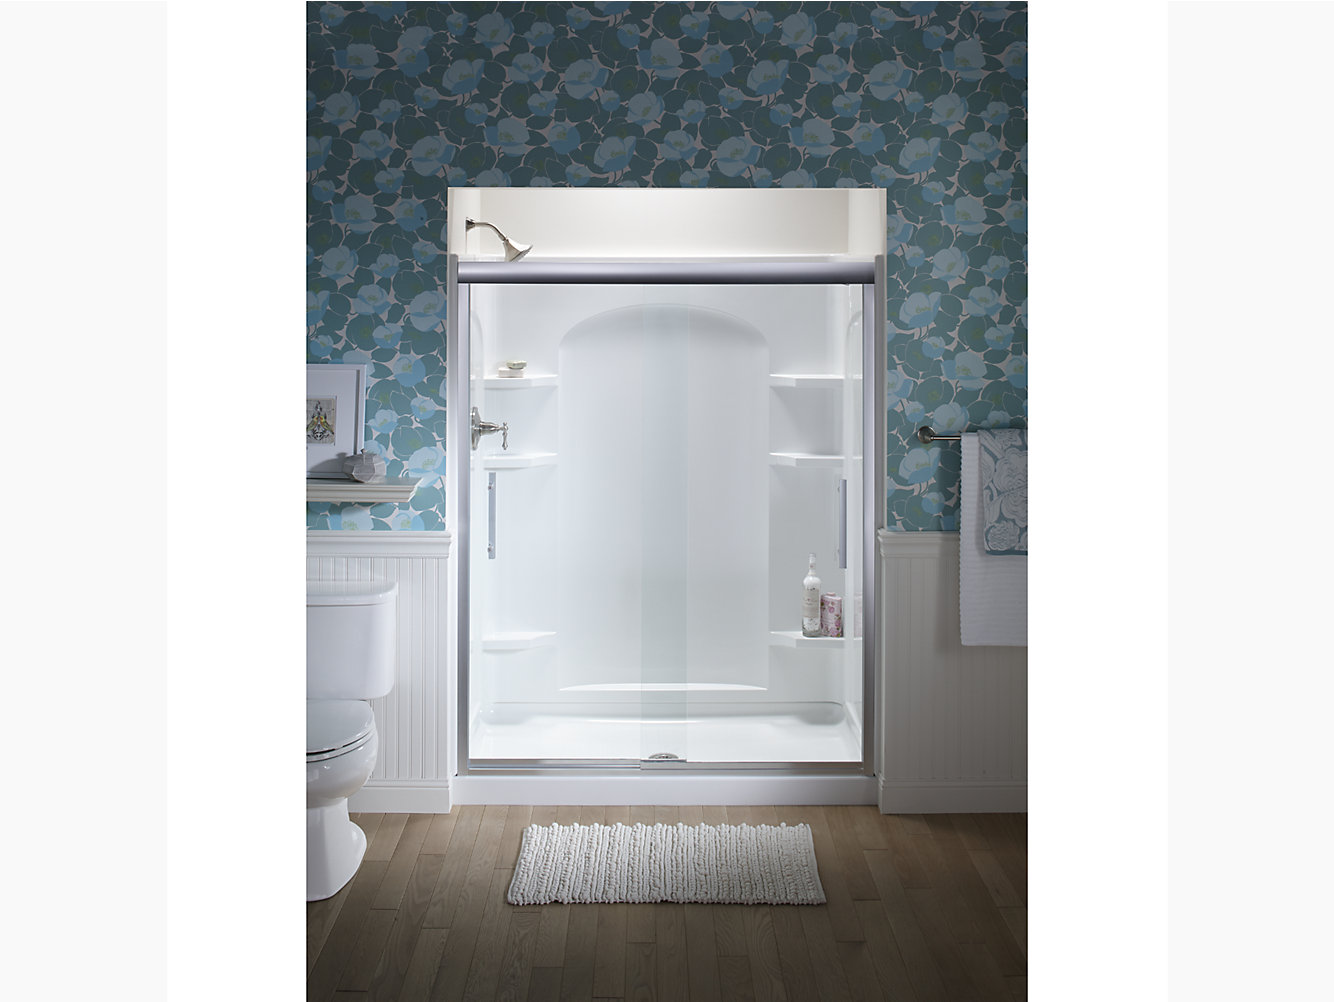 Finesse Peak Frameless Sliding Shower Door 56 5859 58 W X 70 1